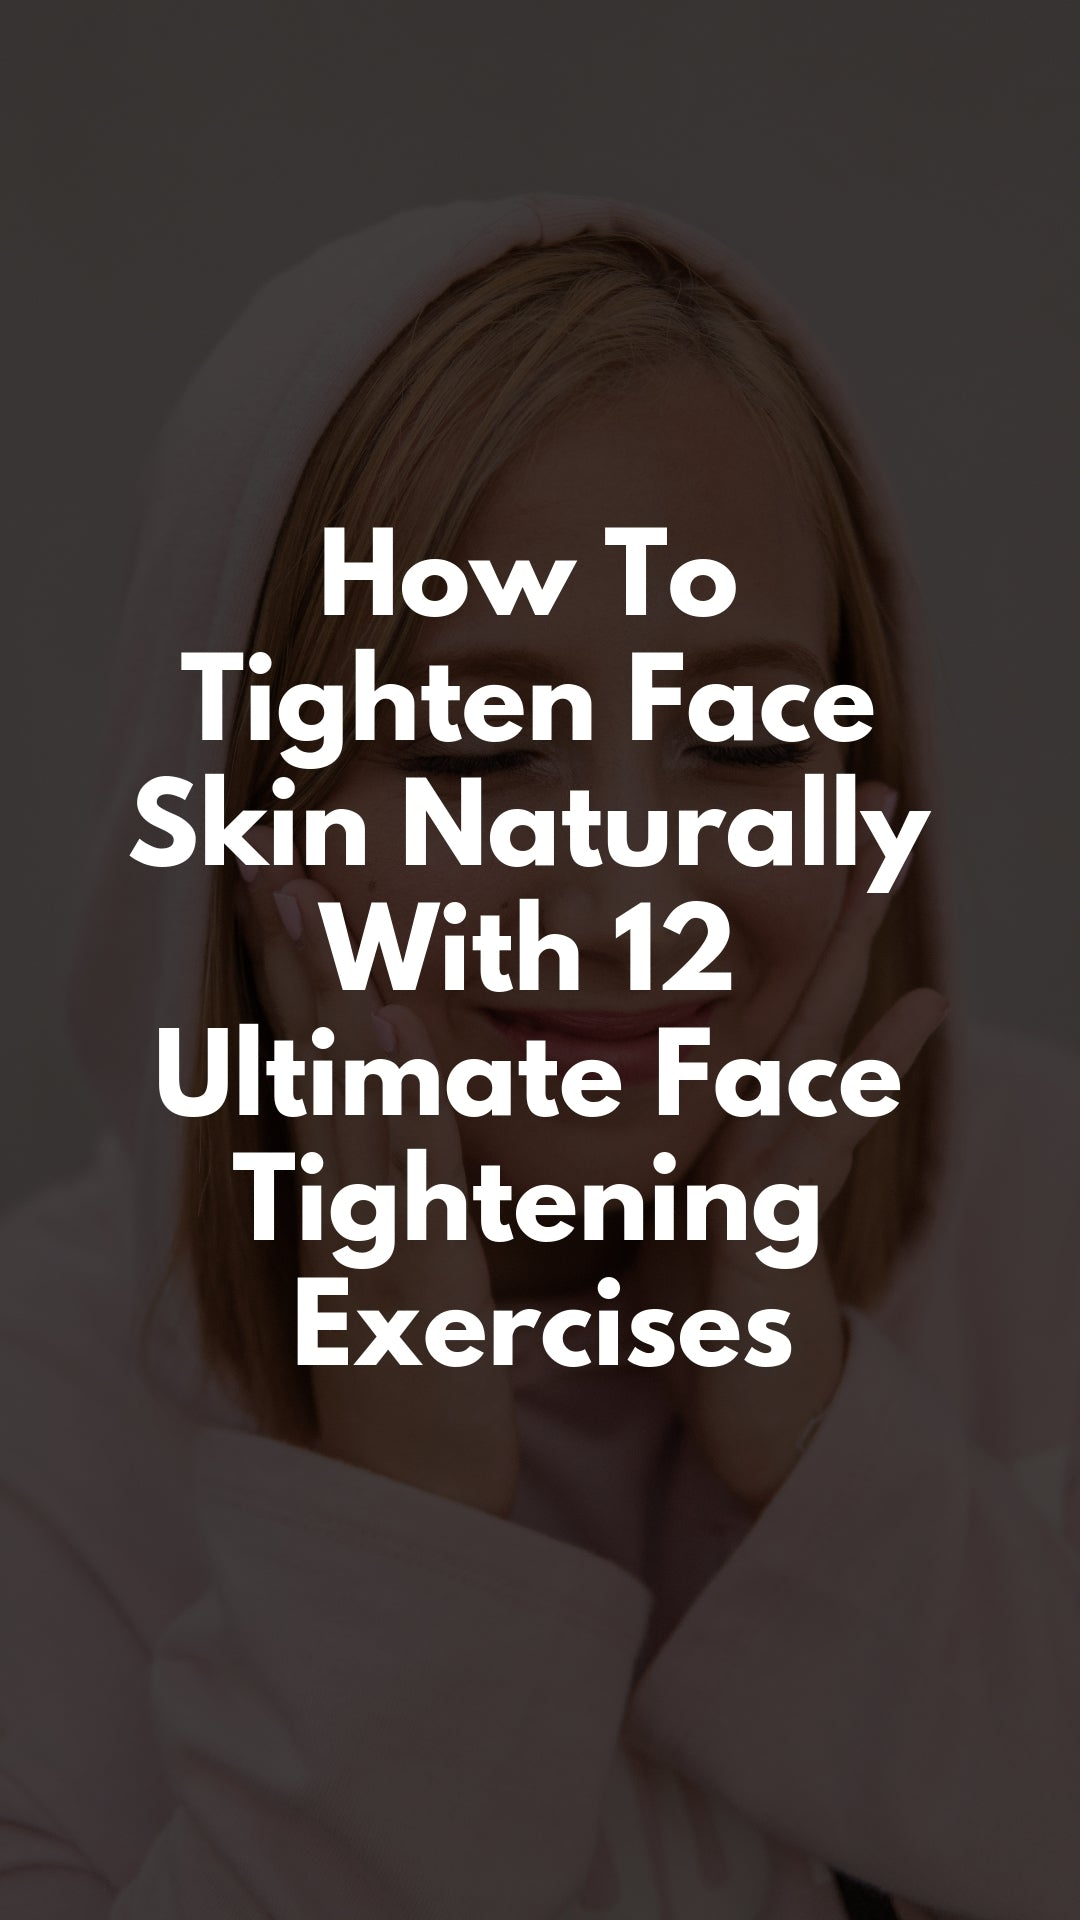 How To Tighten Face Skin Naturally With 12 Ultimate Face Tightening Exercises